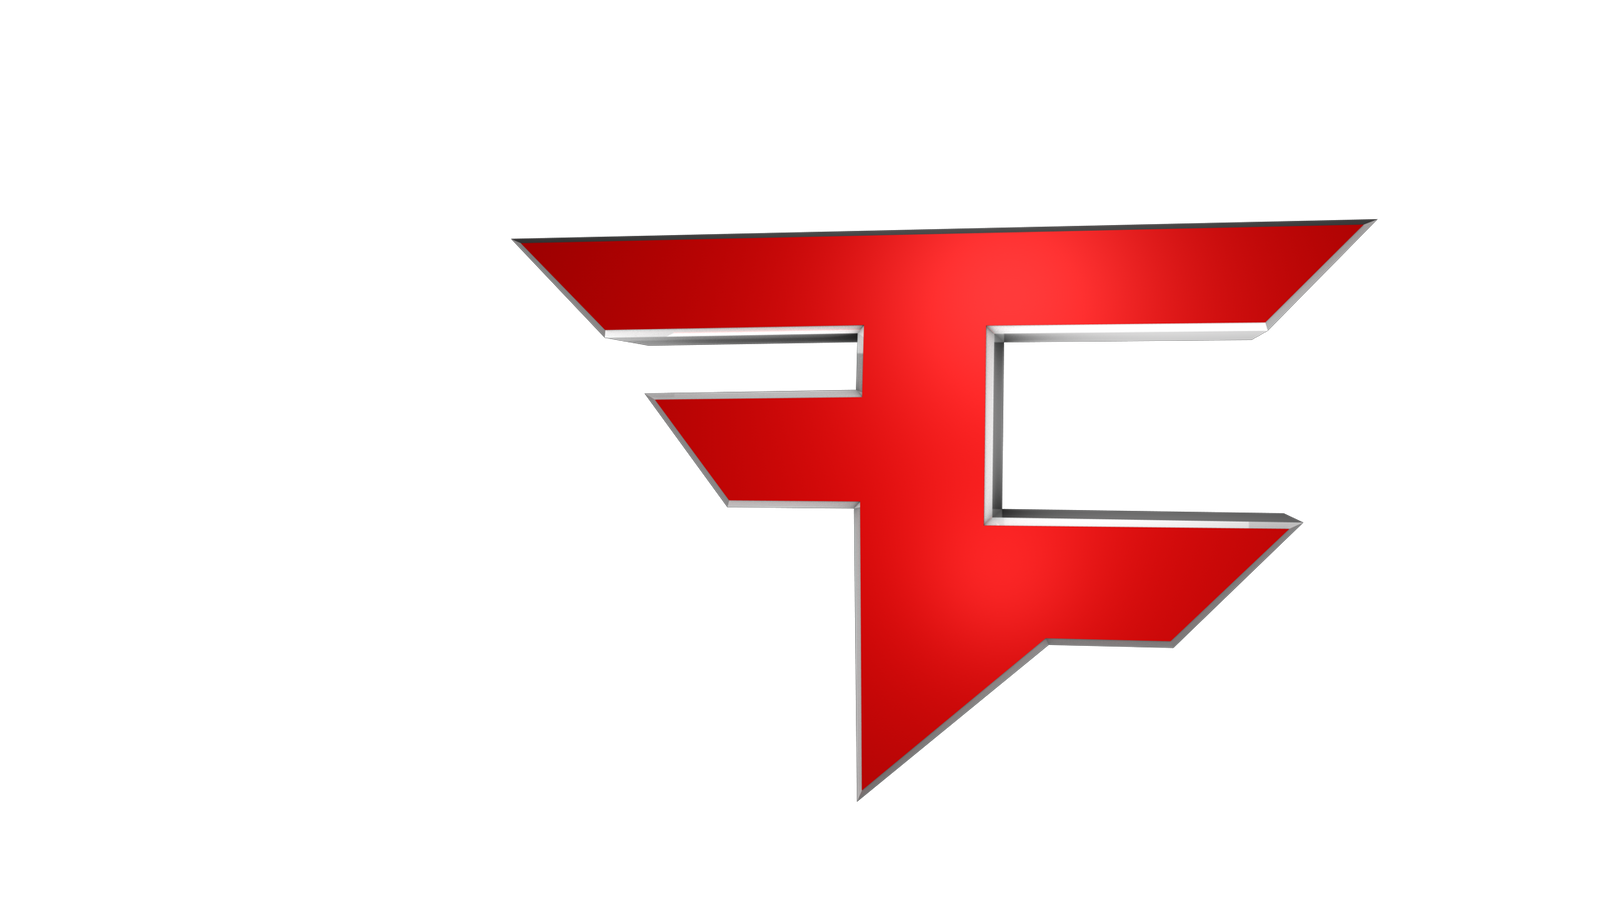 faze clan logo drawing. Black Bedroom Furniture Sets. Home Design Ideas